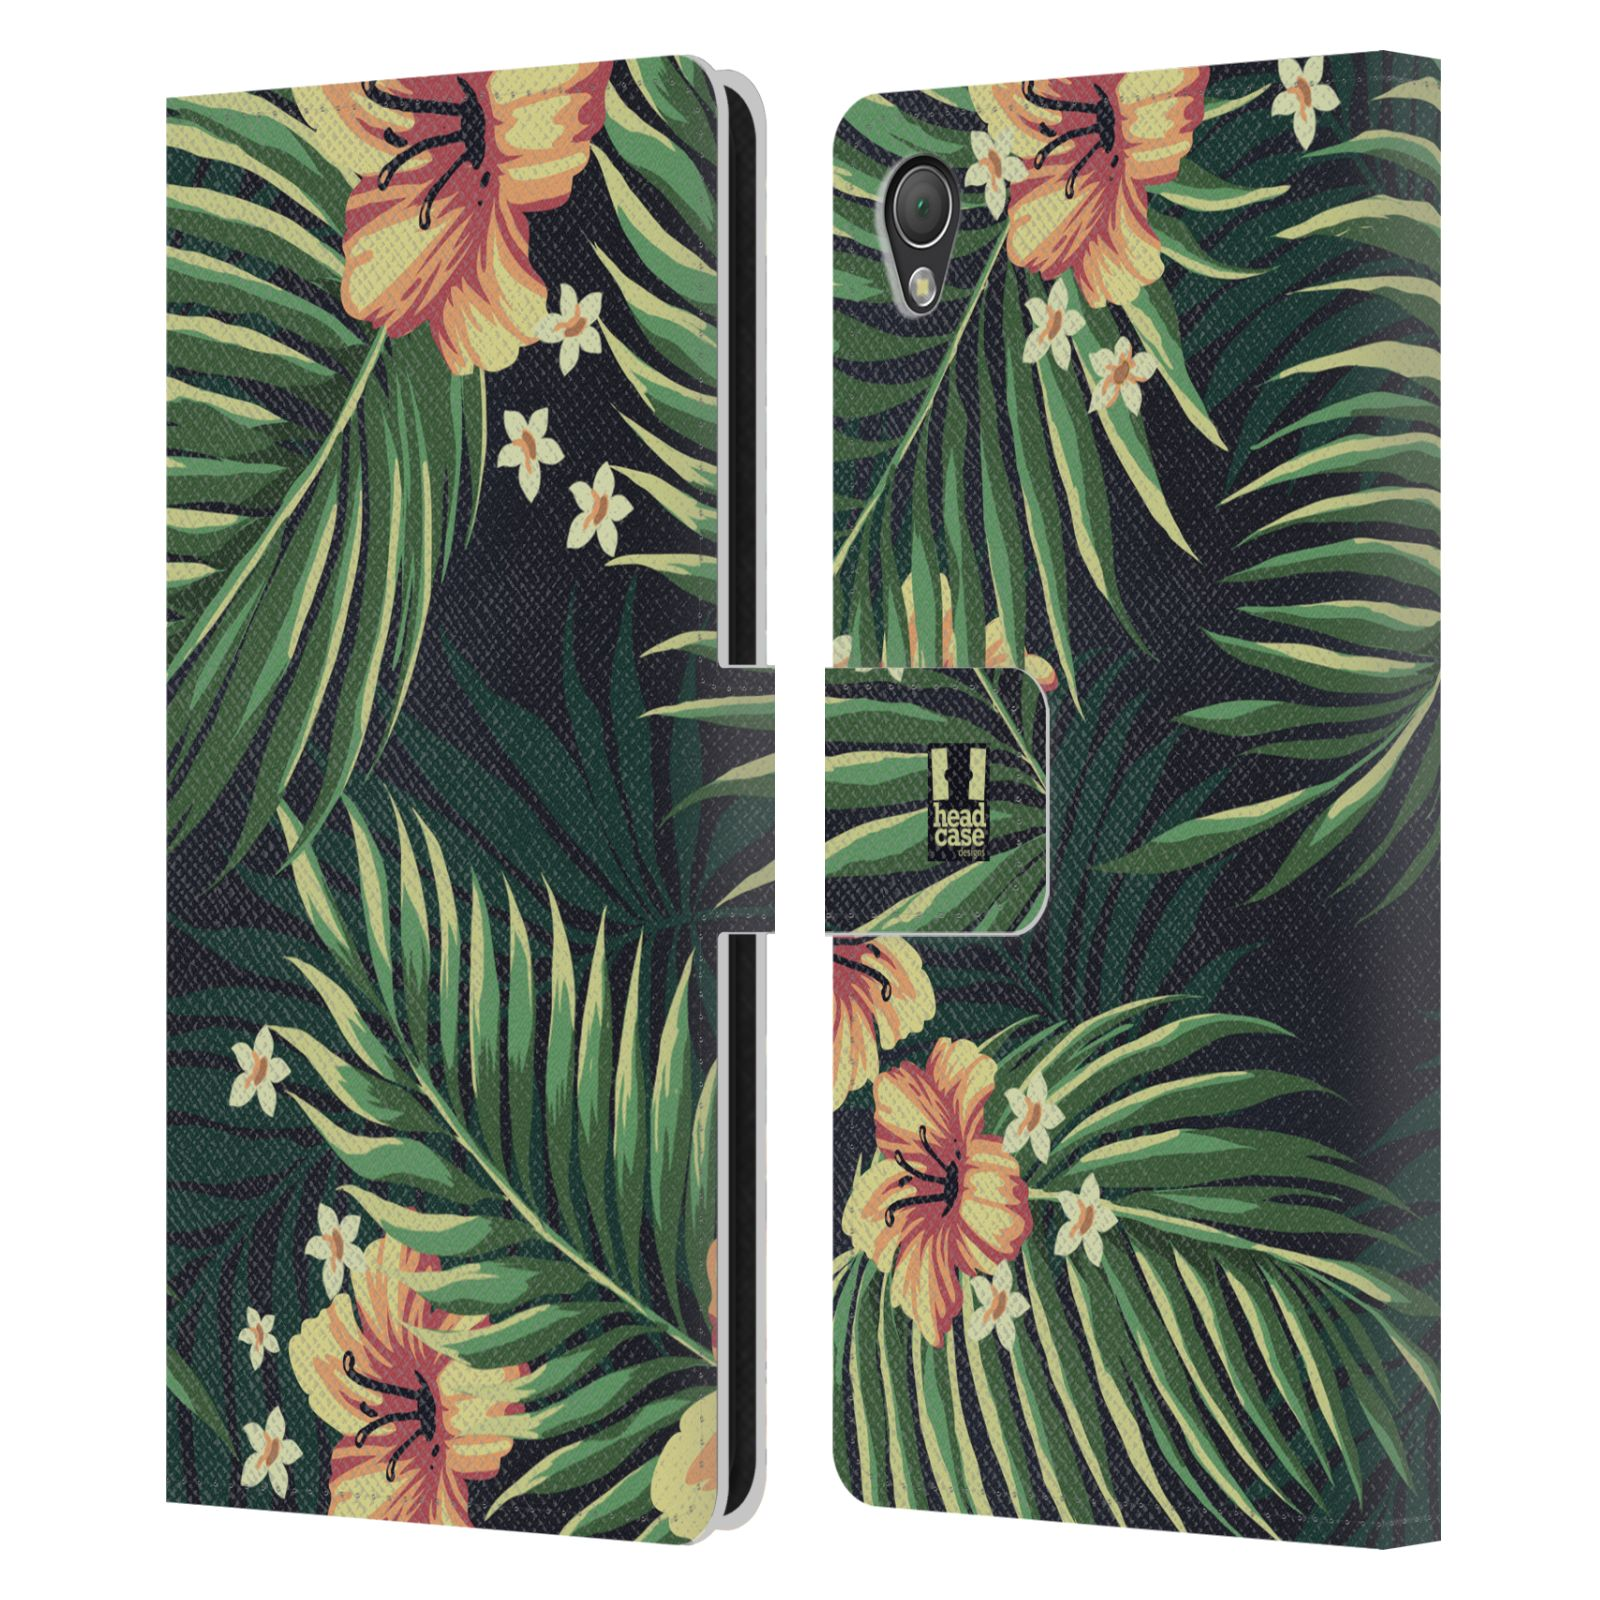 HEAD CASE DESIGNS TROPICAL PRINTS LEATHER BOOK WALLET CASE FOR SONY PHONES 1